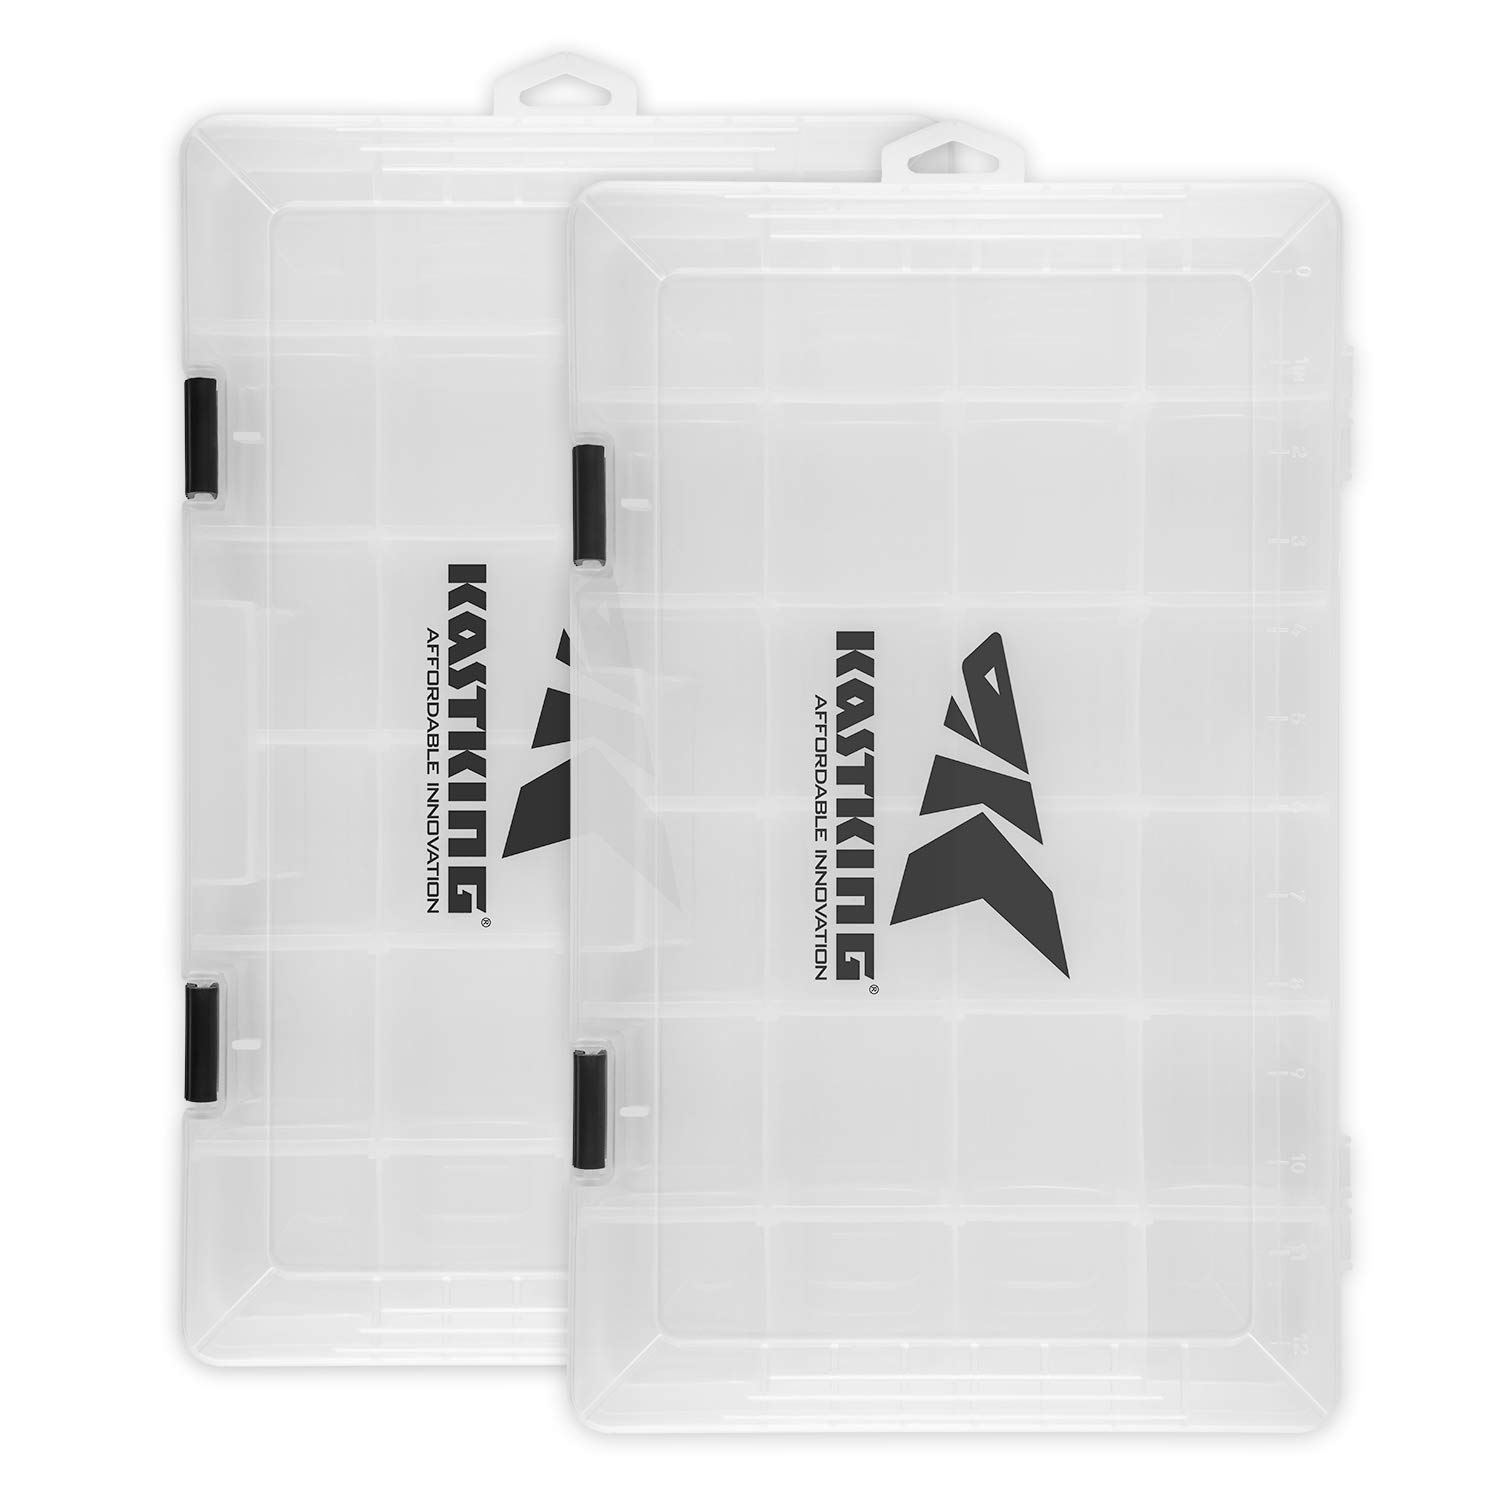 KastKing Tackle Boxes, Tool Box, Plastic Storage Organizer Box with Removable Dividers- Fishing Tackle Storage - Box Organizer - 2 Packs /4 Packs Tackle Trays - Parts Box